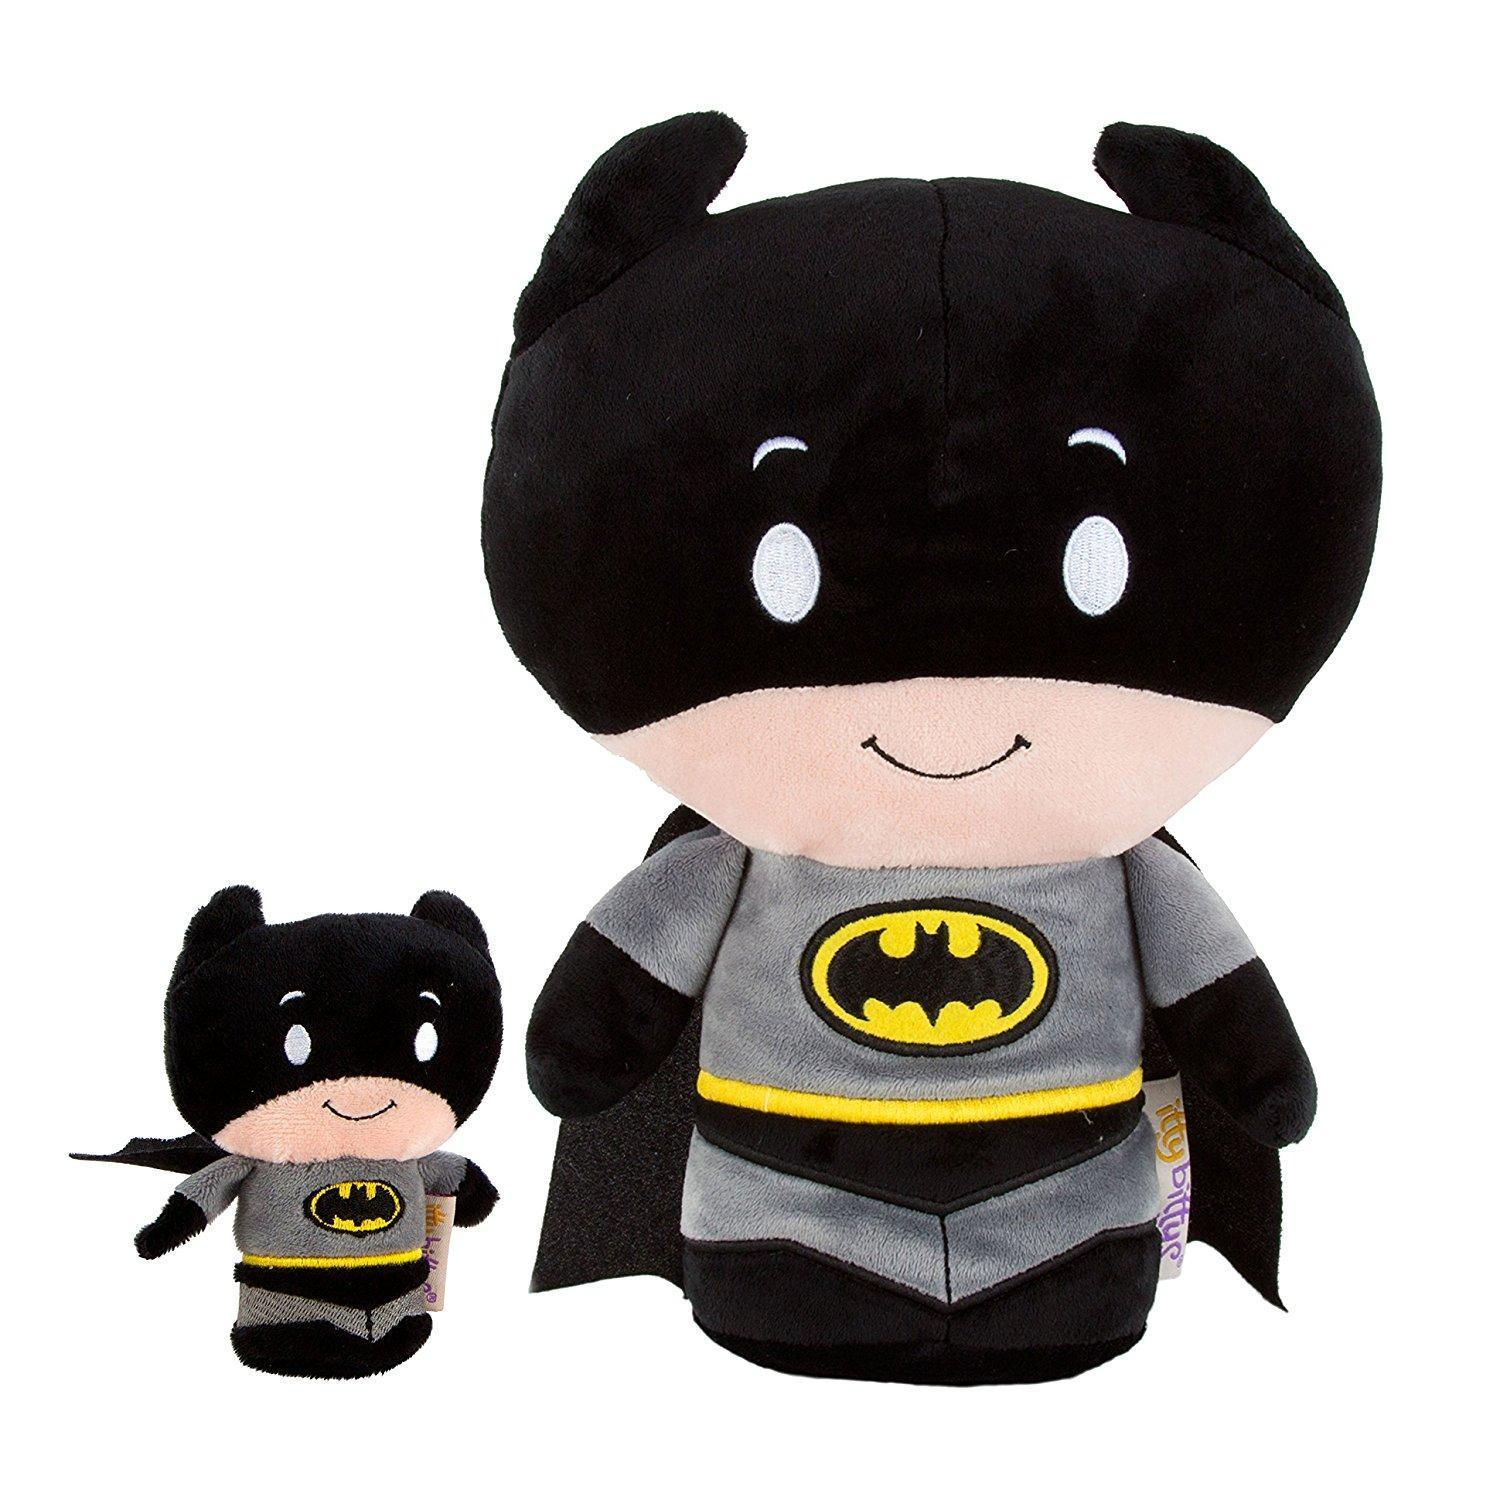 Hallmark DC Comics Batman Itty Biggy